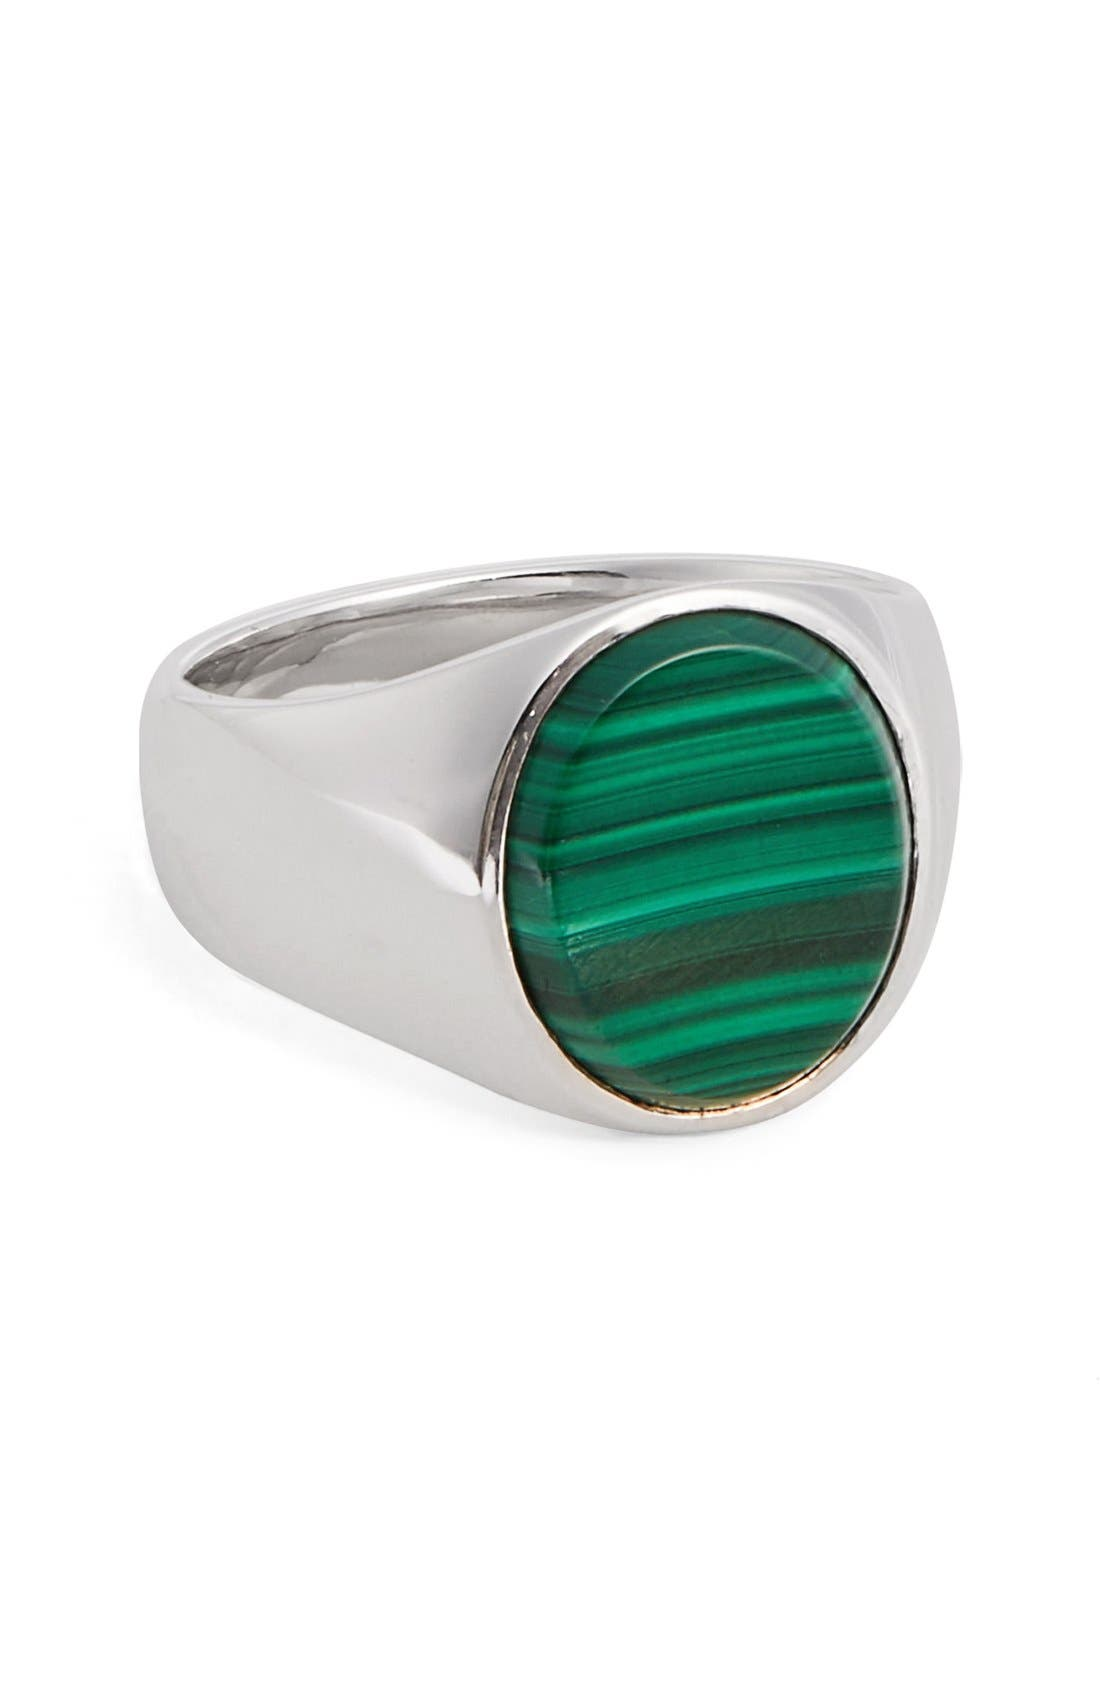 'Patriot Collection' Oval Malachite Signet Ring,                             Main thumbnail 1, color,